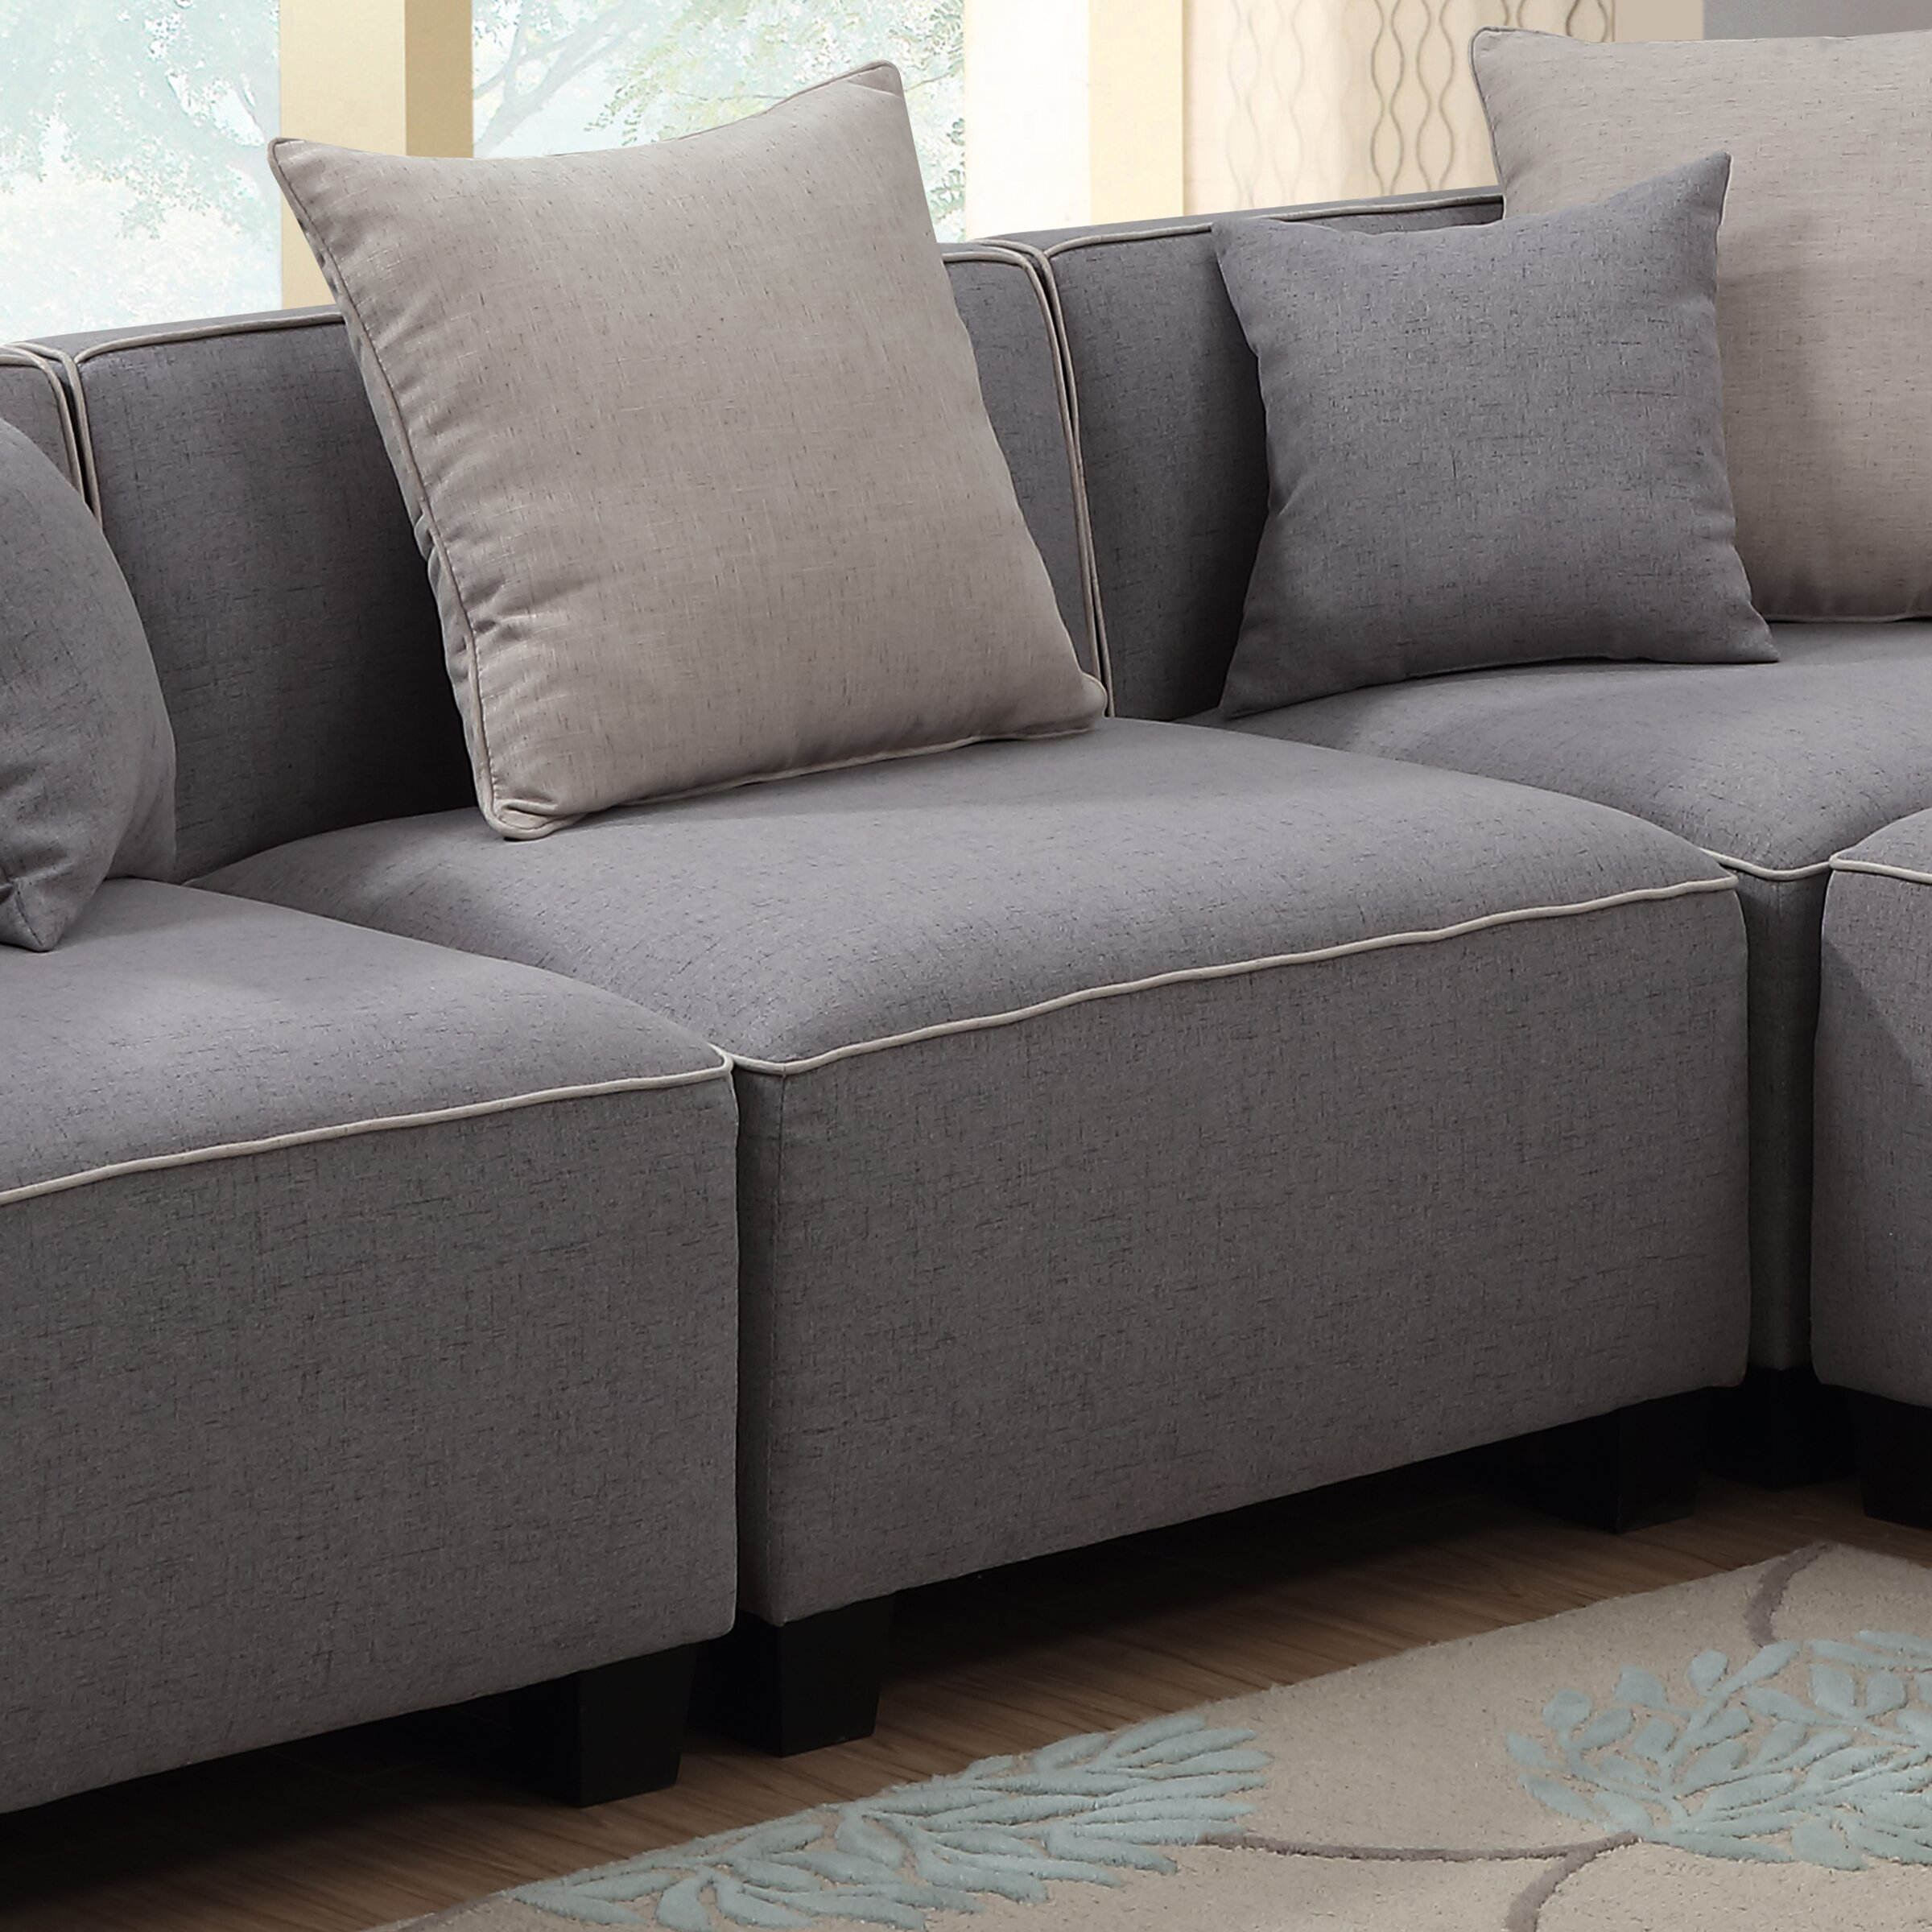 Modular Sectional Sofa Small Spaces: AC Pacific Holly Modern 5 Piece Tuxedo L Shaped Modular